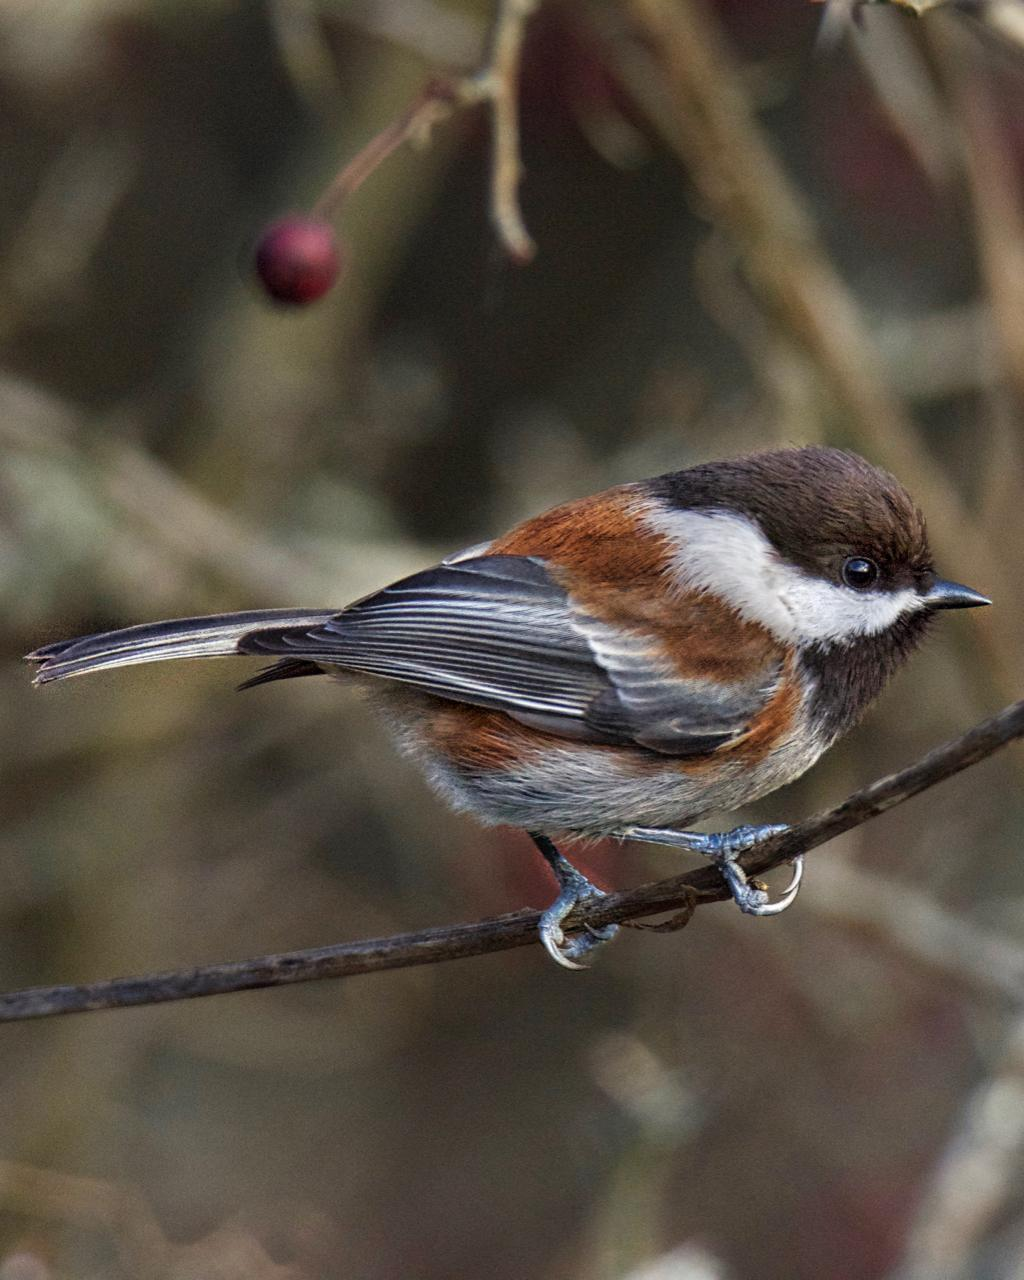 Chestnut-backed Chickadee Photo by Brian Avent